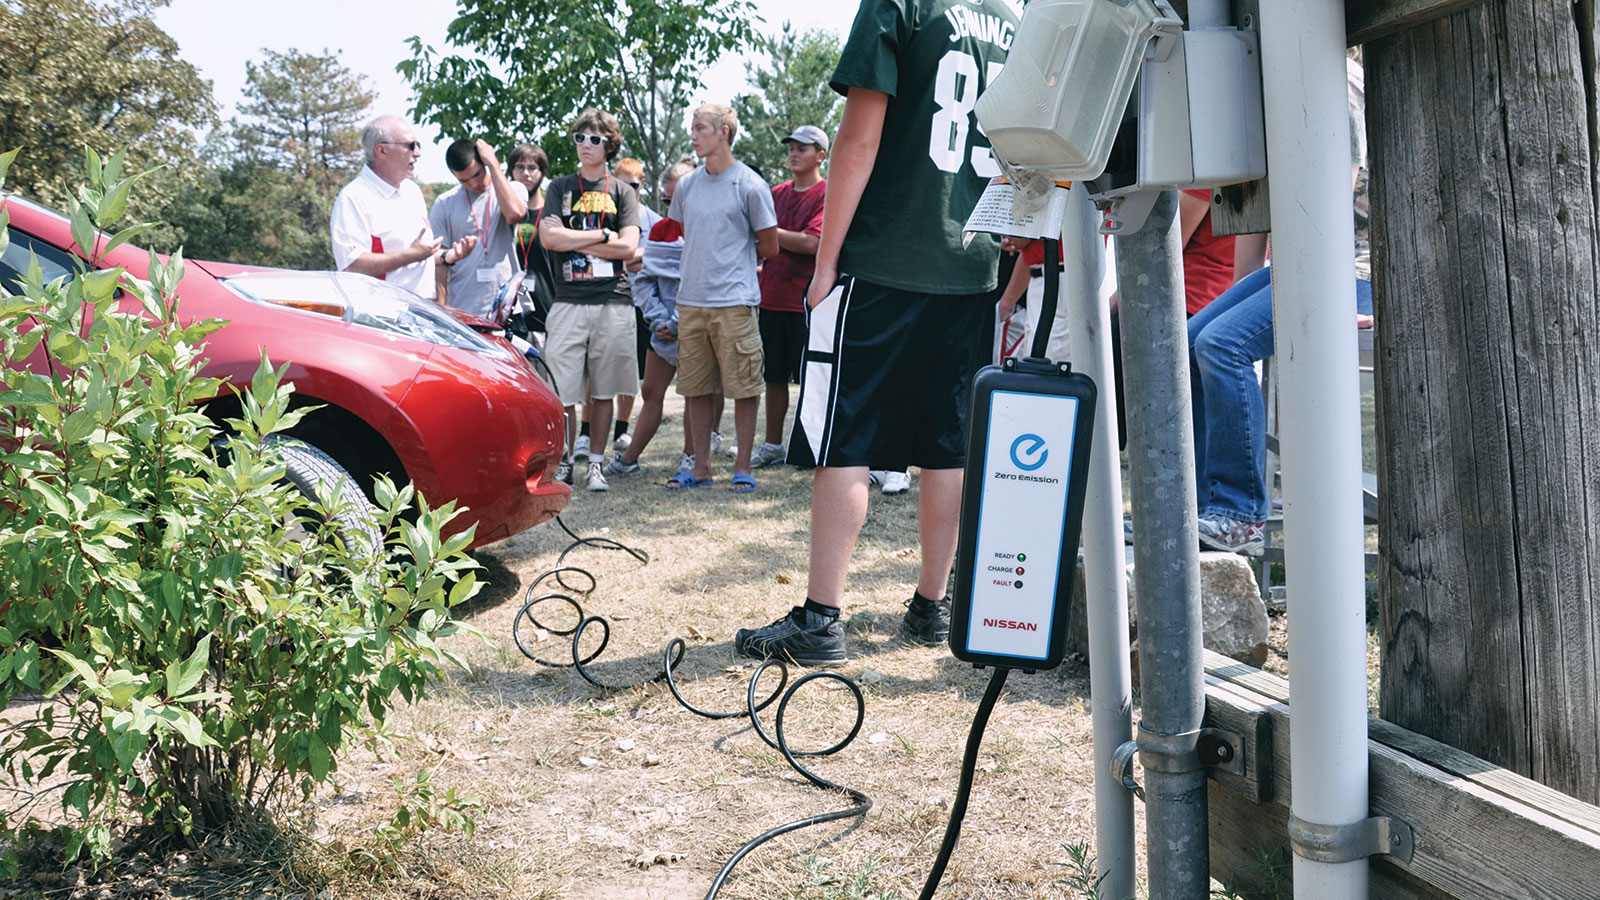 An electric vehicle is being charged as a professor talks with students.